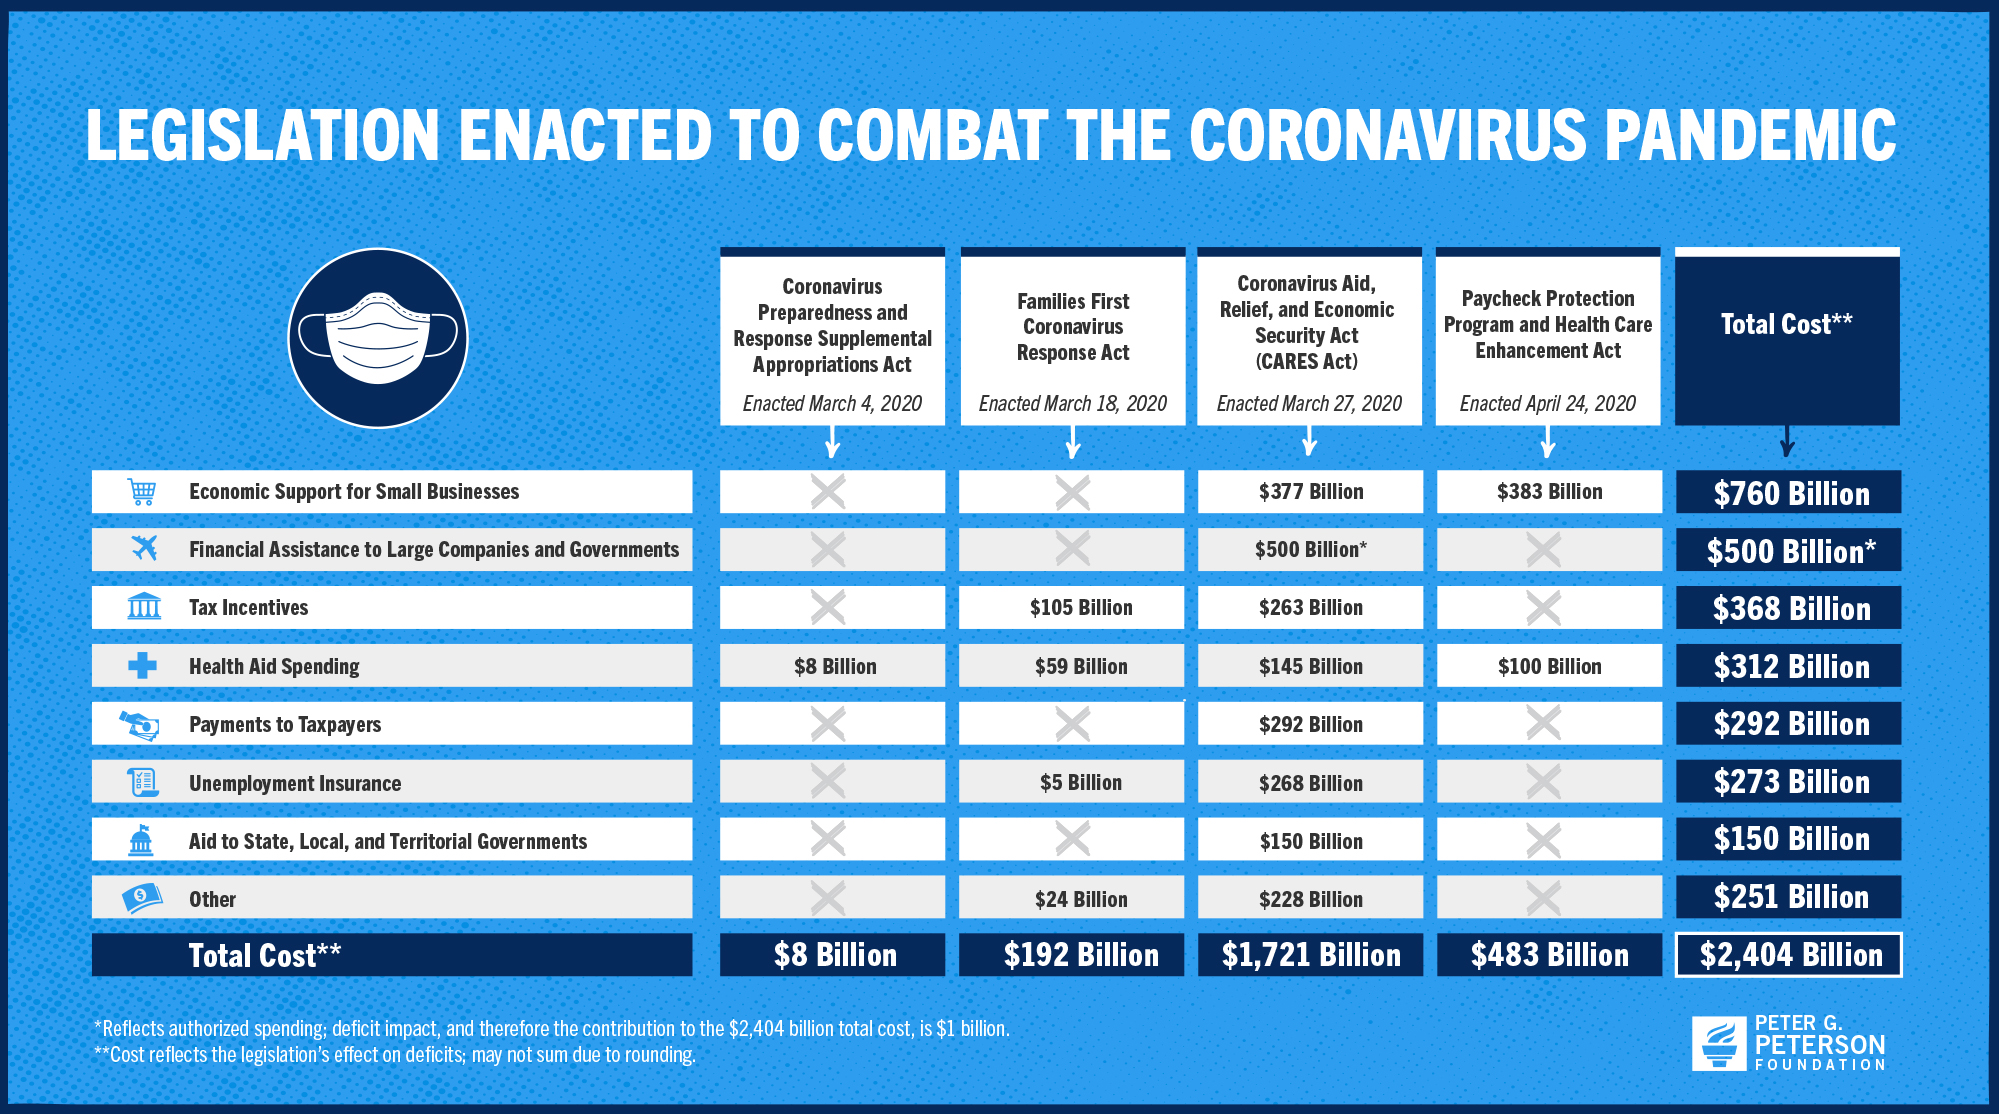 Total coronavirus legislation endacted thus far.